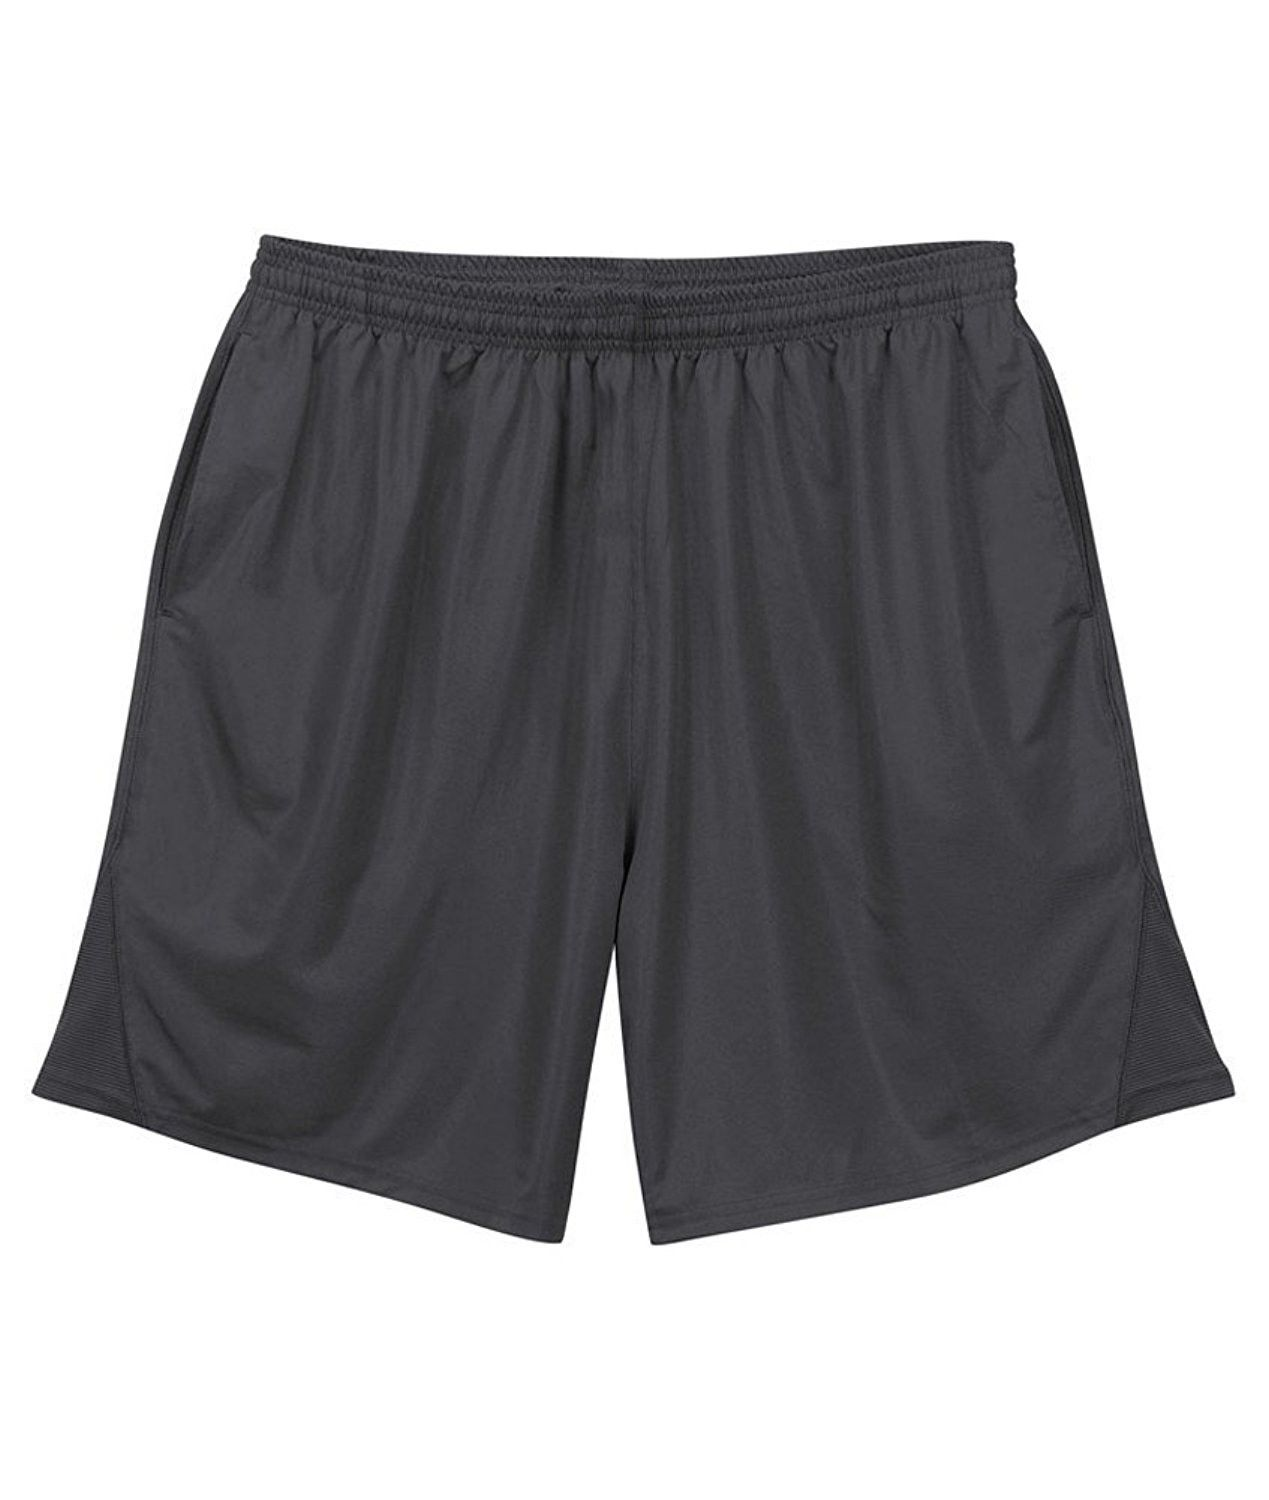 53f0551826 Men's Clothing, Active, Active Shorts, BT5 9'' Inseam Trainer Shorts - 4110  - Graphite - CQ11TZJTI1B #men #fashion #clothing #style #outfits #Active  Shorts ...